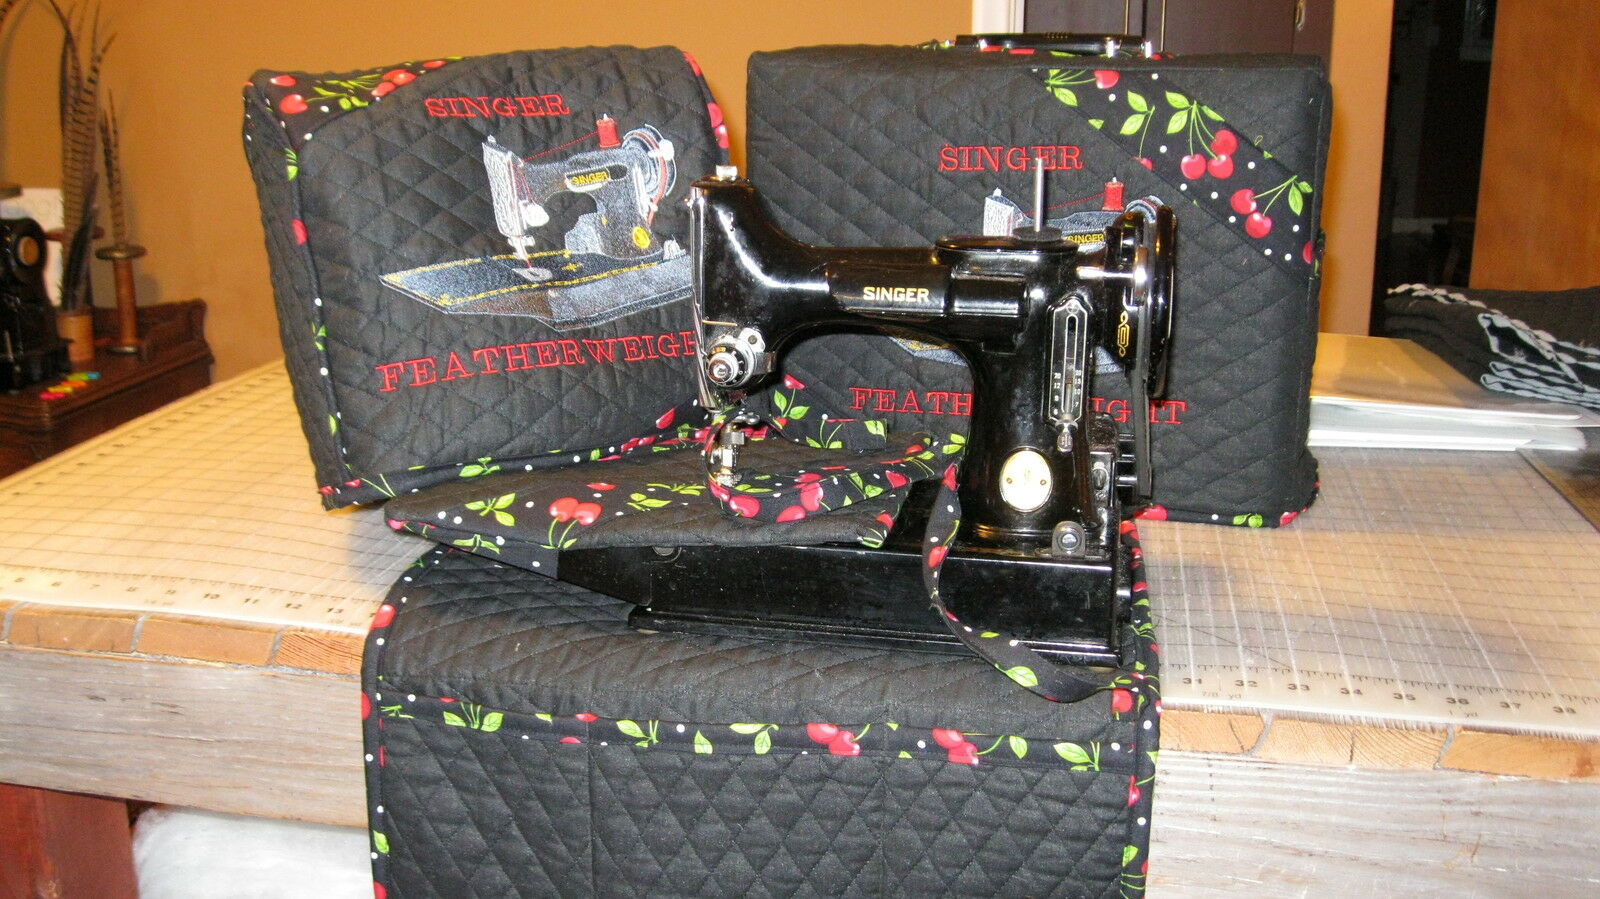 Singer Featherweight 221/222 Sewing Machine COVER SET with ...